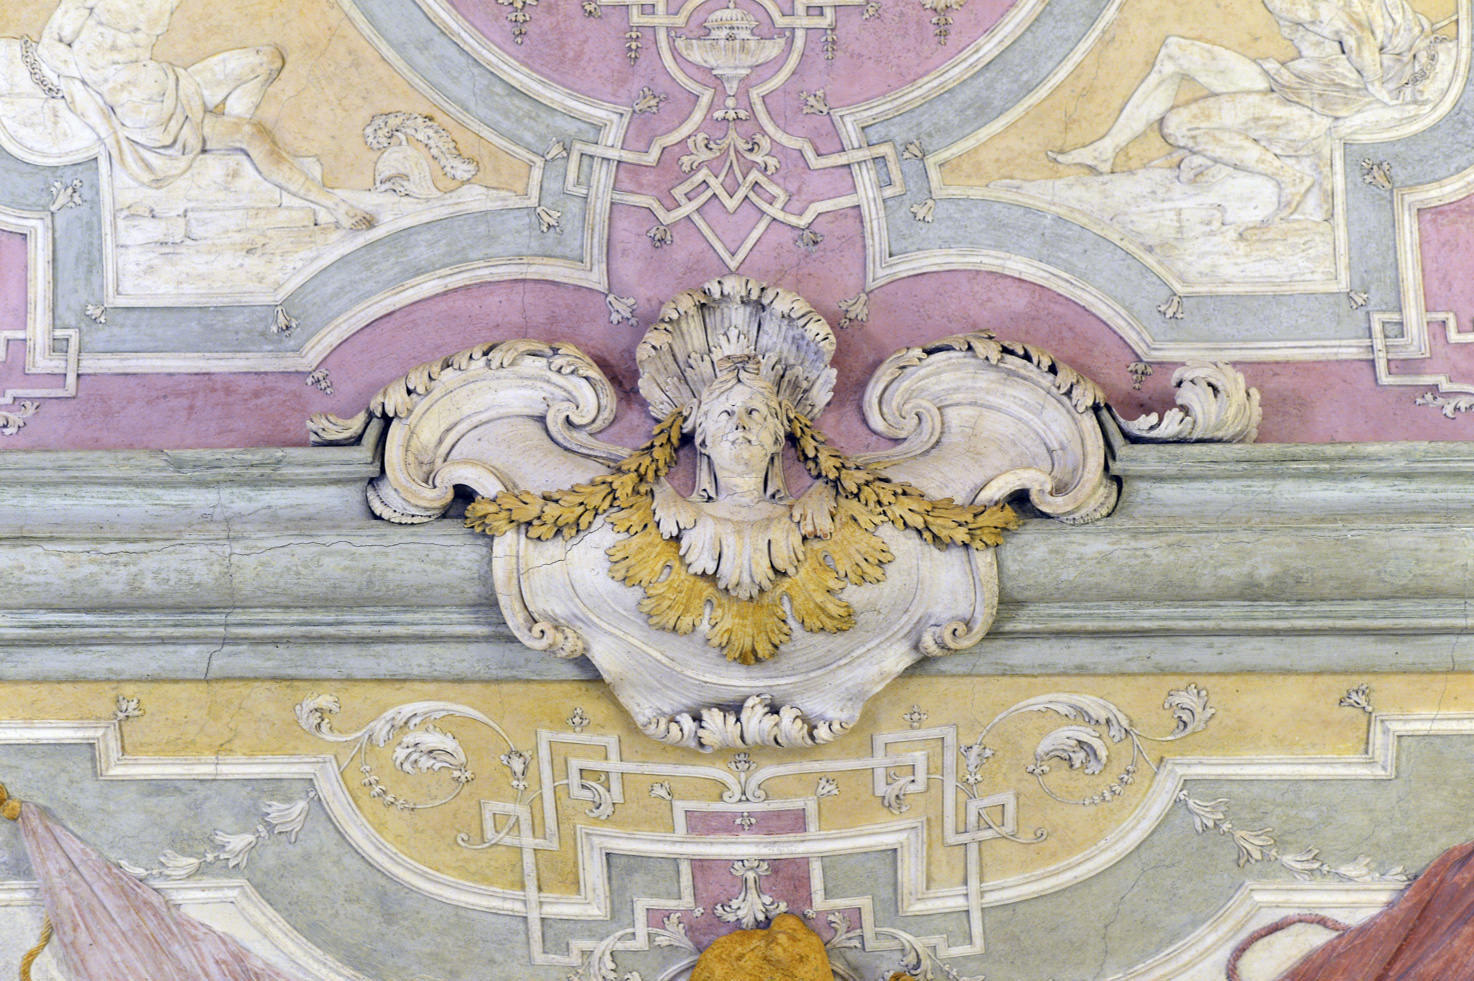 Detail of the stucco decorations